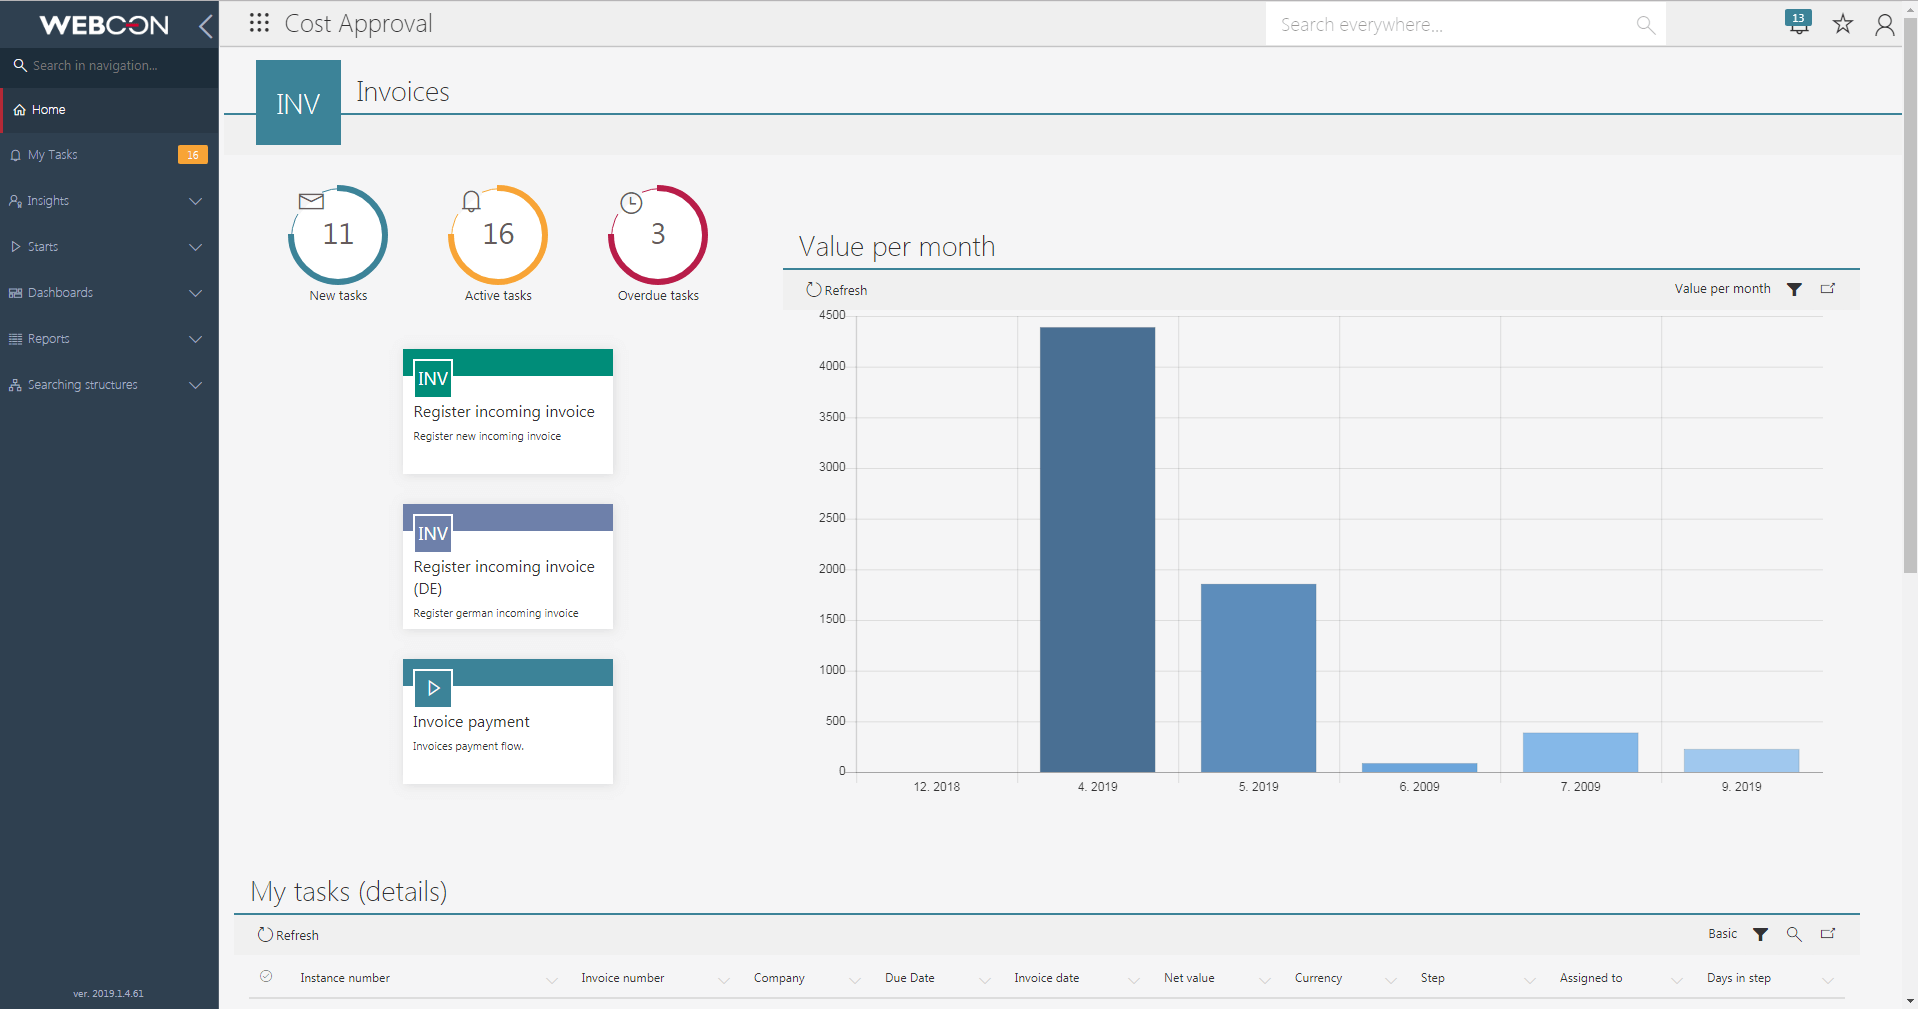 Electronic cost invoice workflow in WEBCON BPS dashboard